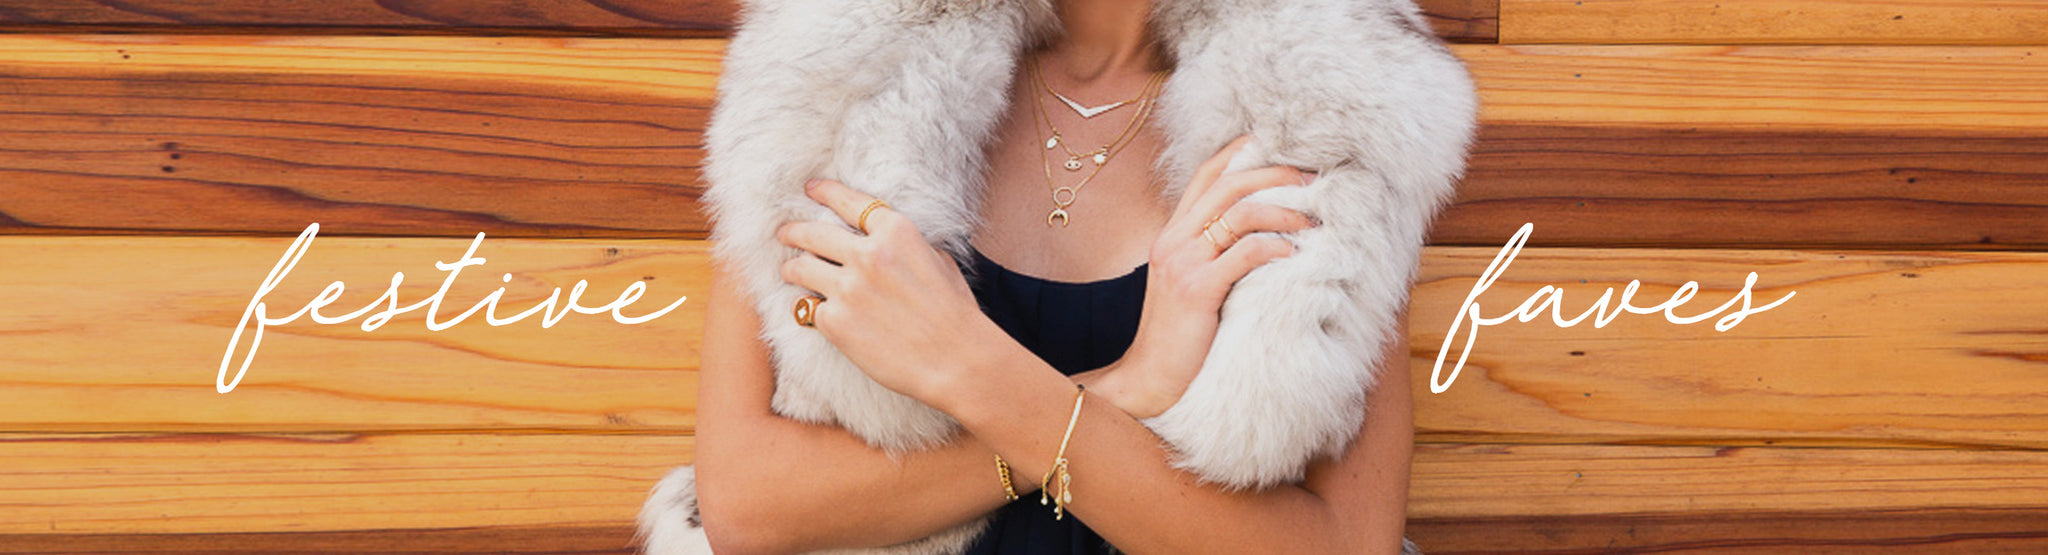 Jules Smith Festive Faves | 14K Gold Plated Jewelry for the Holiday Season